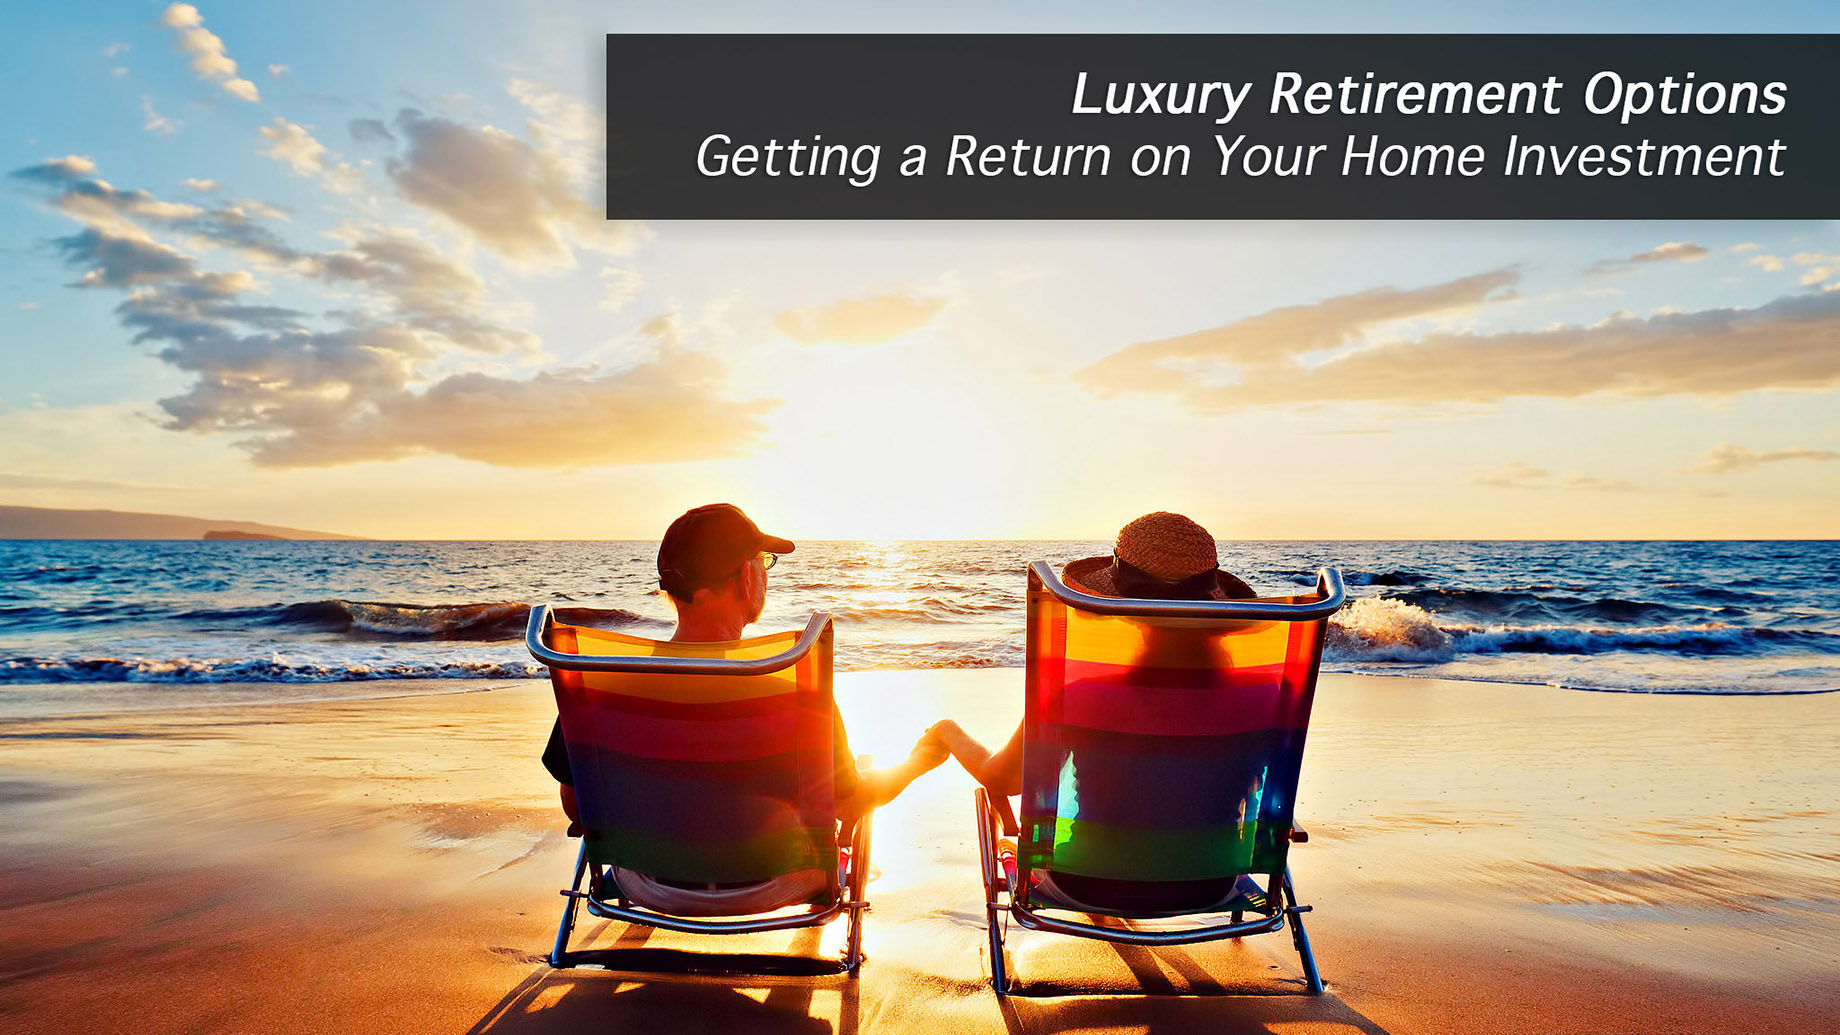 Luxury Retirement Options - Getting a Return on Your Home Investment with a Reverse Mortgage